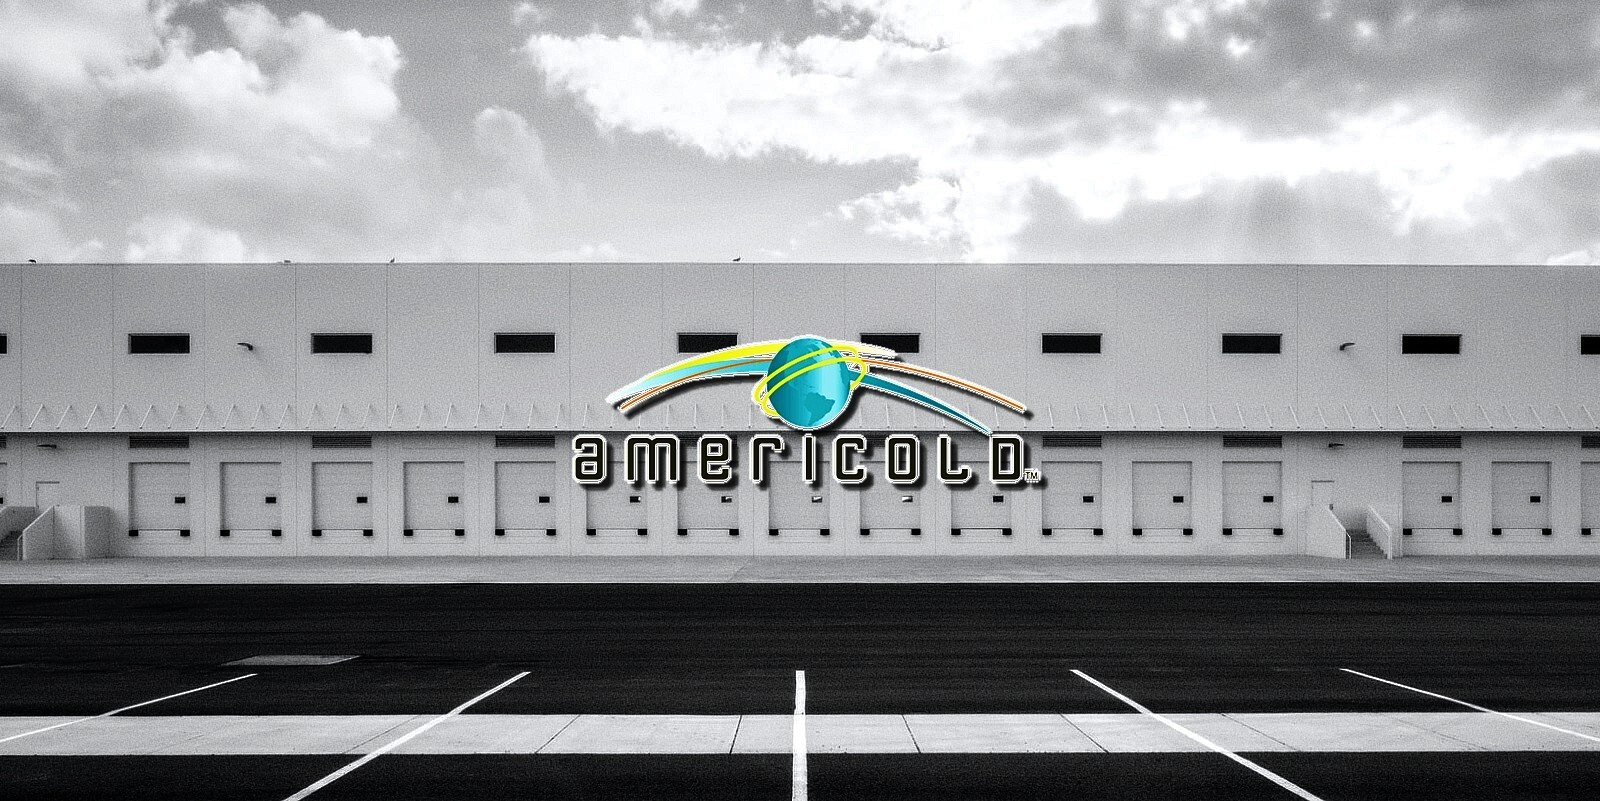 Cold storage giant Americold hit by cyberattack, services impacted